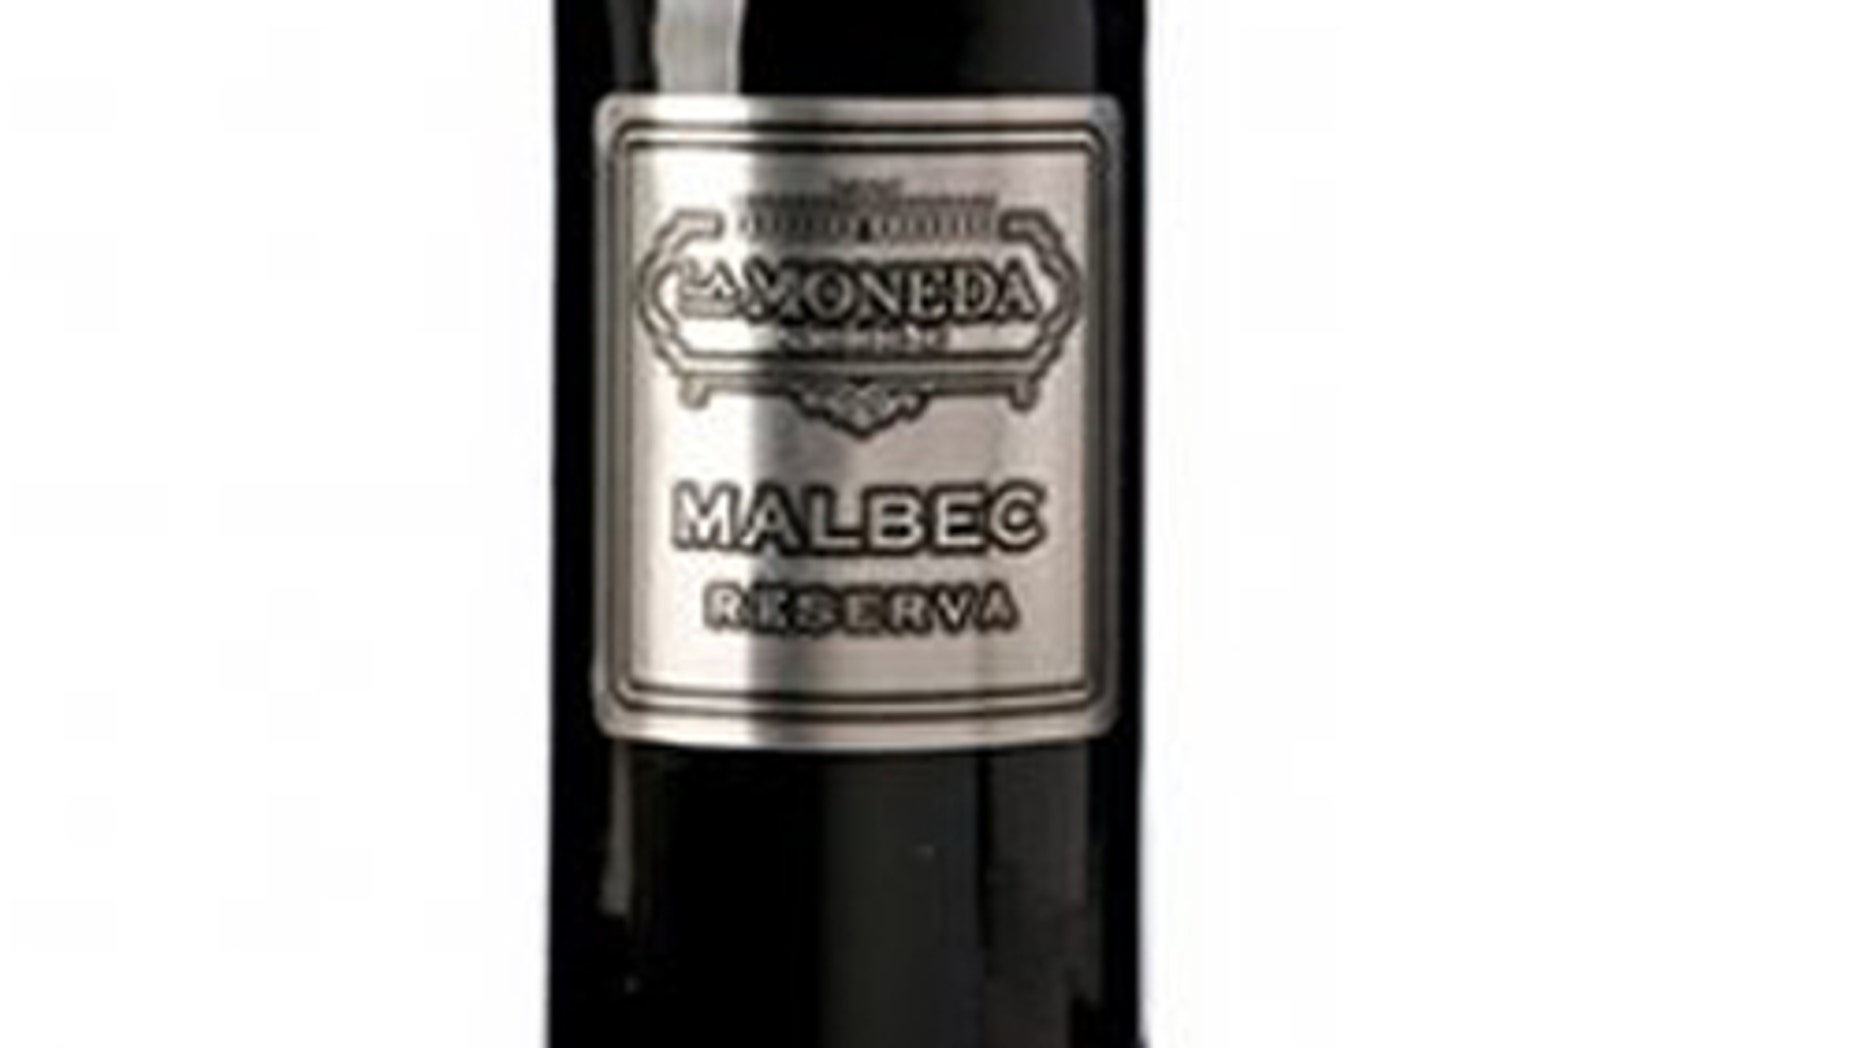 La Moneda Reserva Malbec, a Chilean Malbec available exclusively at Walmart subsidiary Asda, won the top prize for the best red single-varietal at the Decanter World Wine Awards.